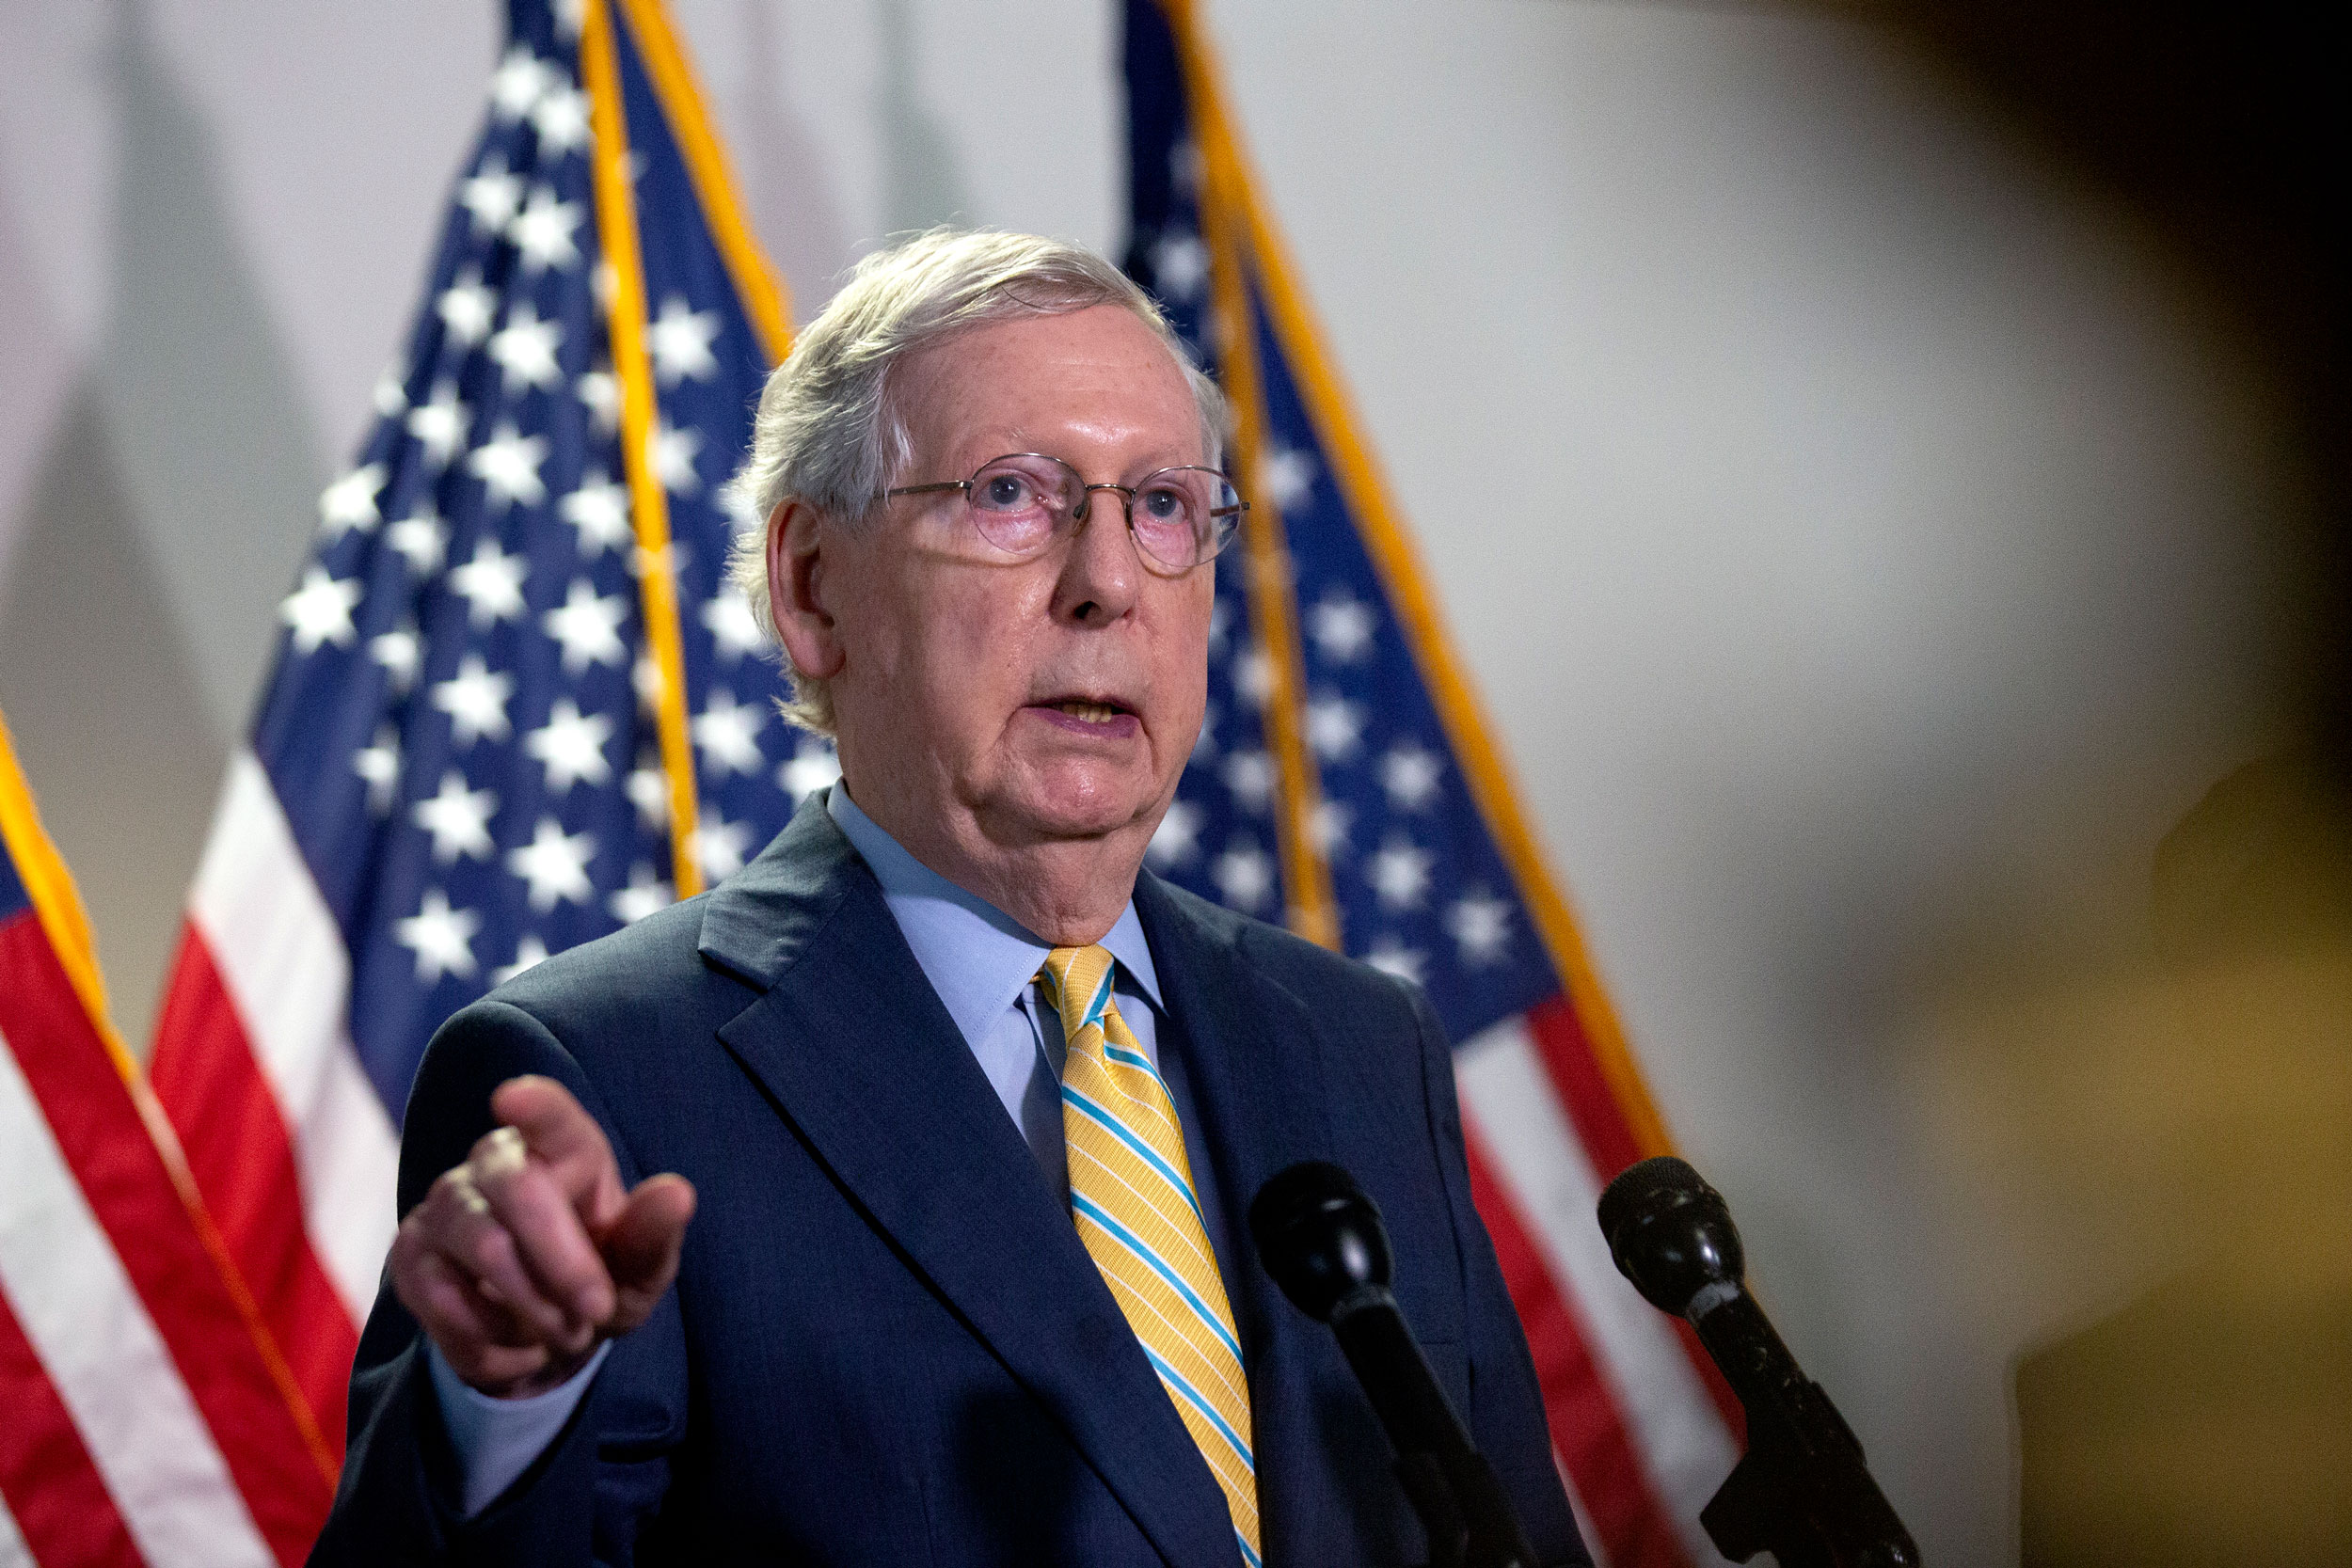 Senate Majority Leader Mitch McConnell speaks during a press conference in the Hart Senate Office Building on June 30 in Washington, DC.